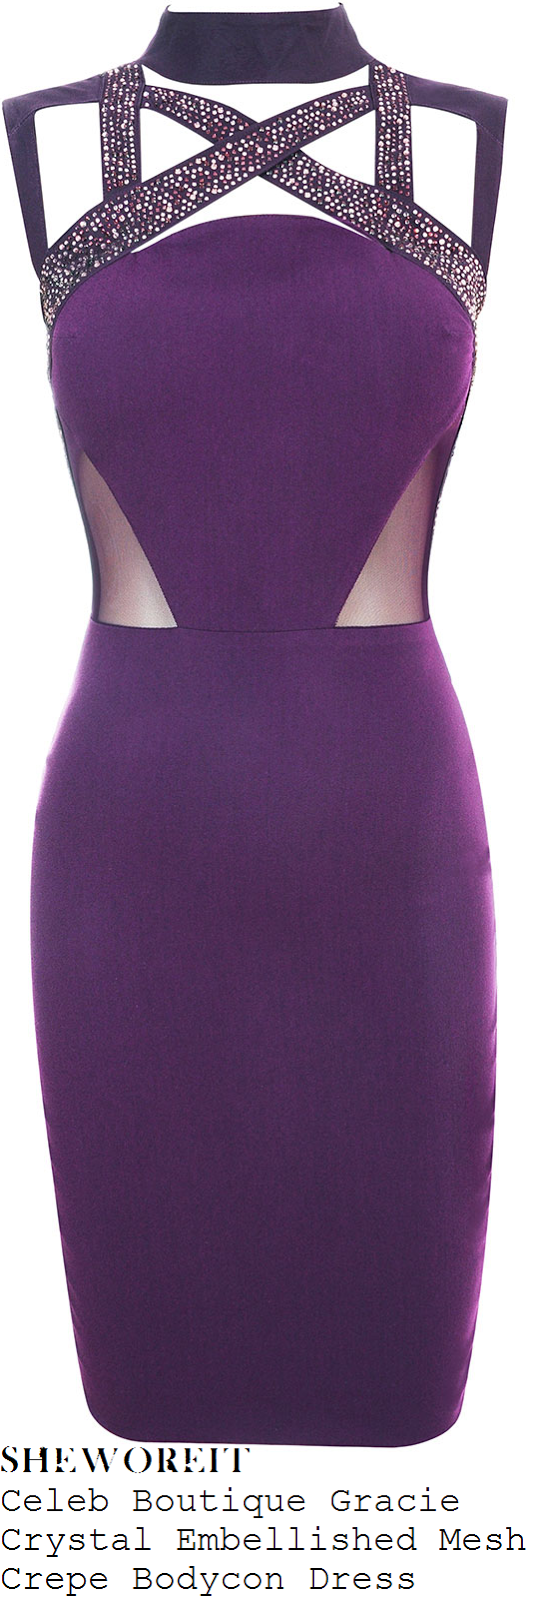 jessica-wright-purple-criss-cross-crystal-embellished-strap-mesh-panel-bodycon-dress-towie-80s-party